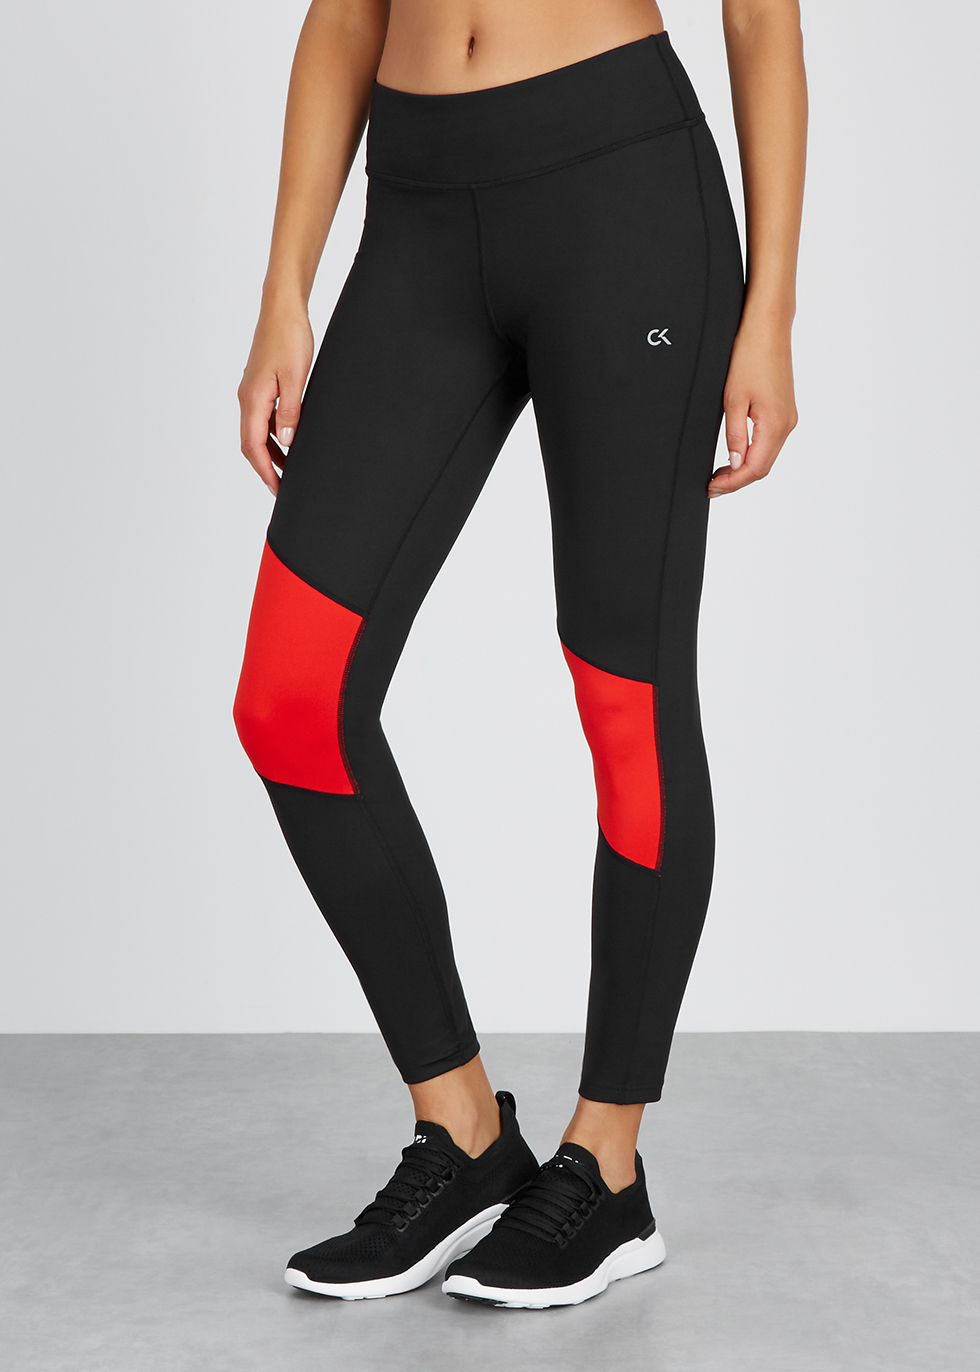 Black stretch leggings - Calvin Klein Performance